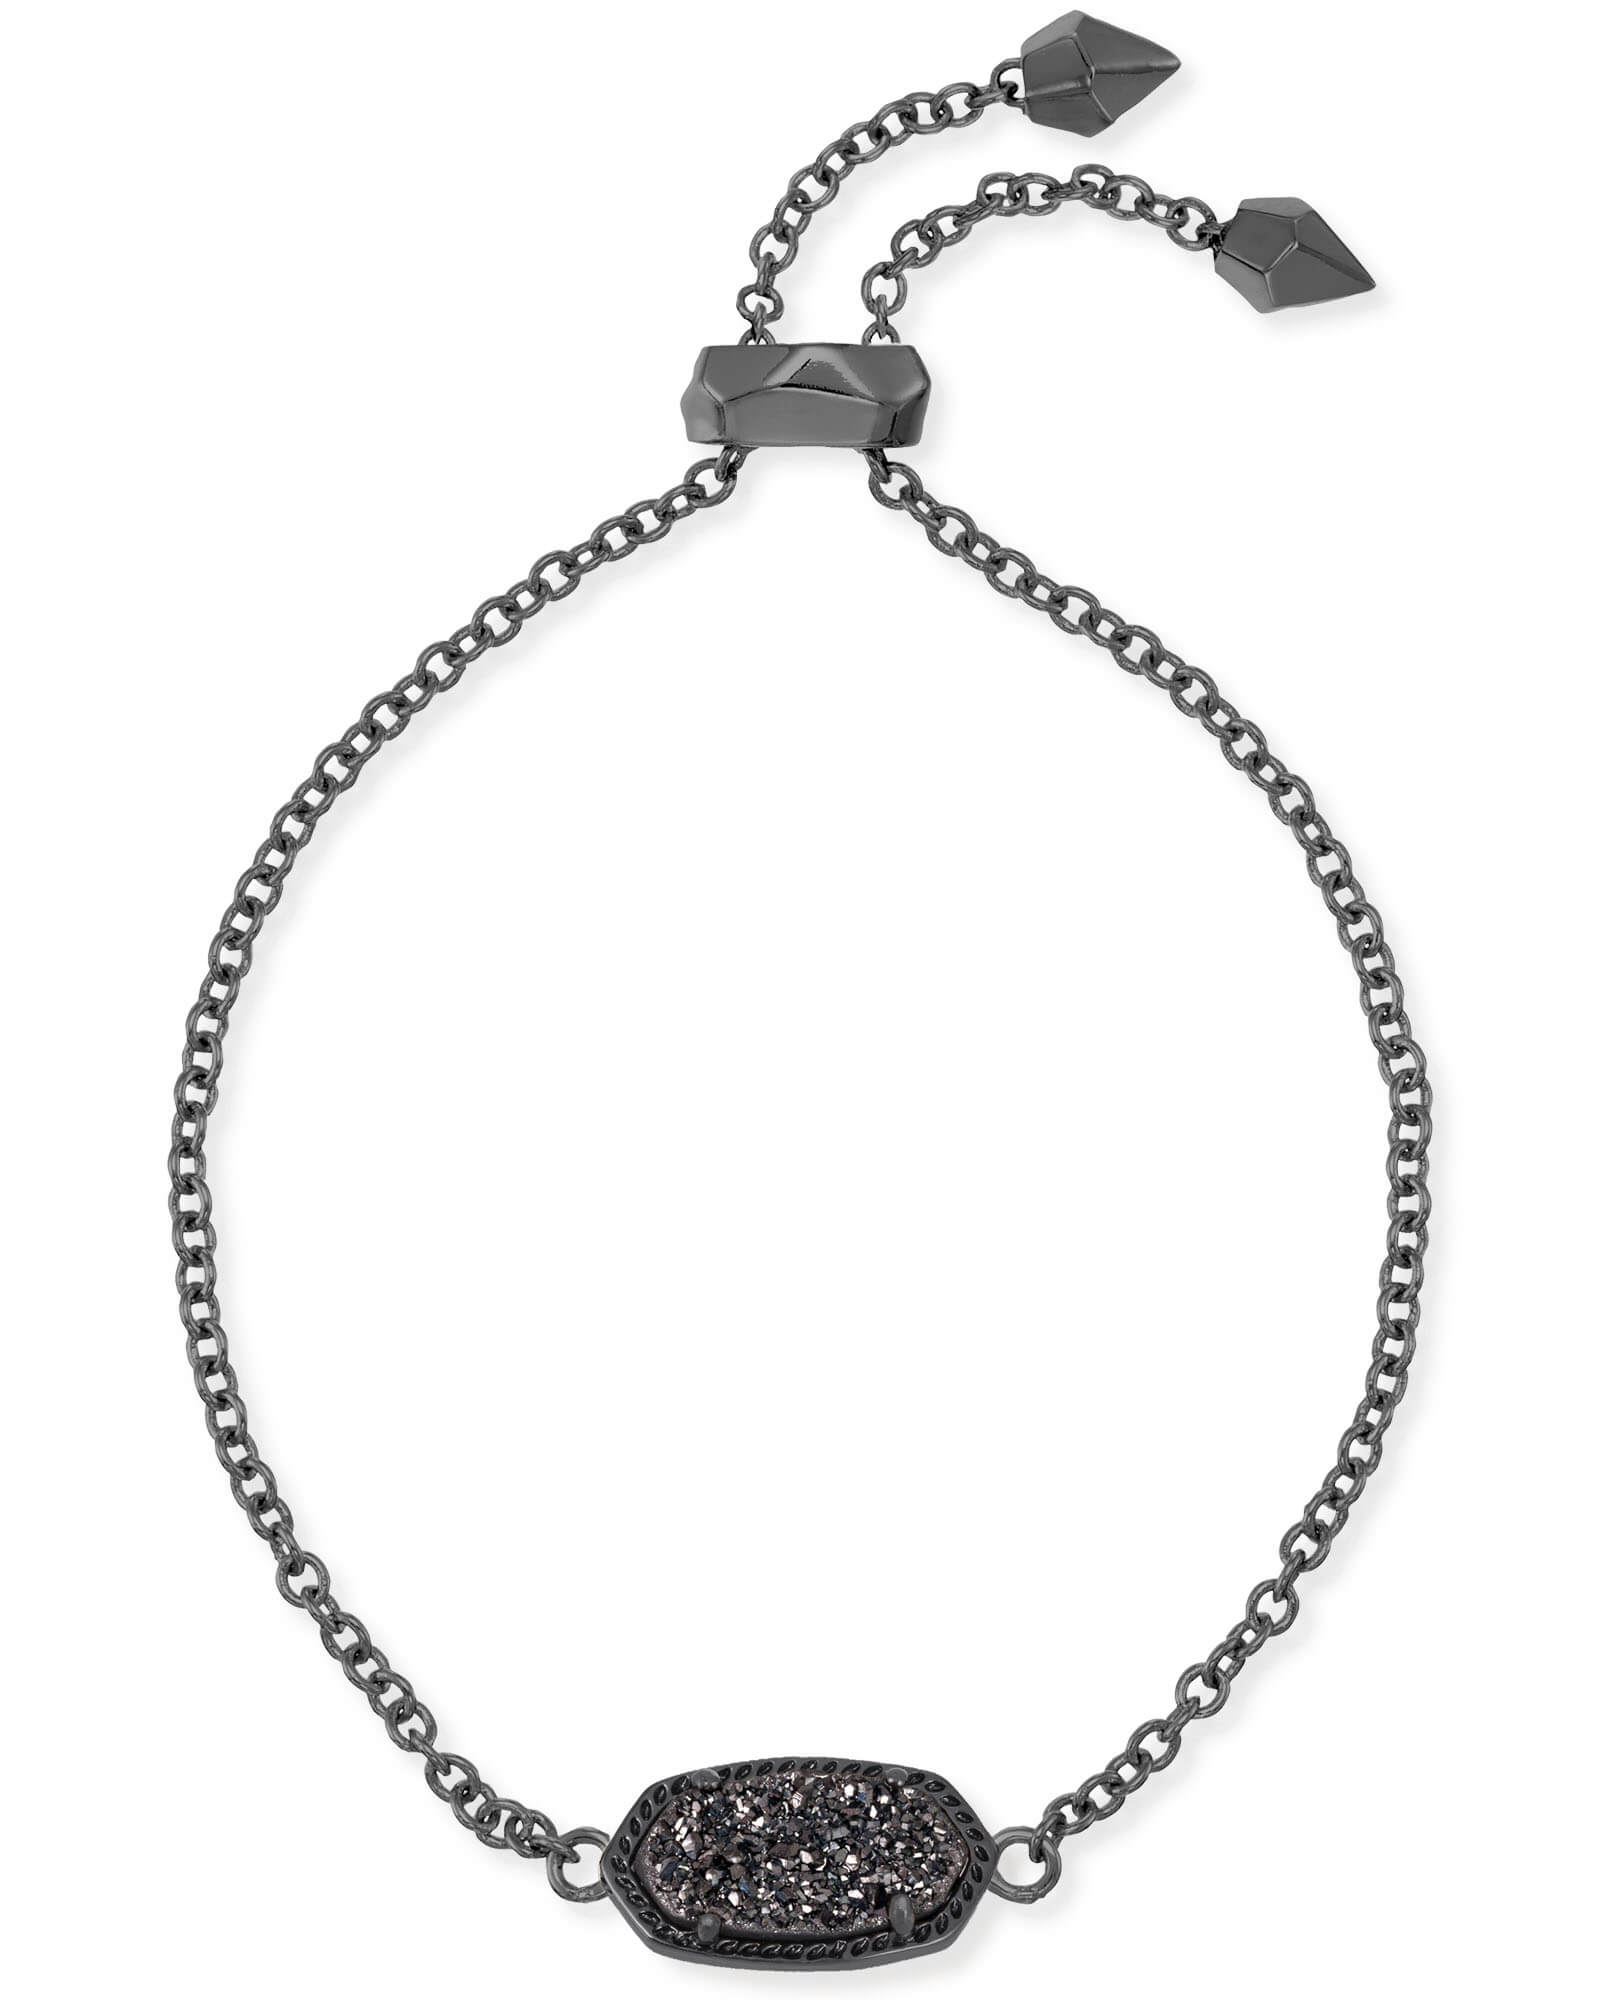 FizzyButton Gifts Granddaughter necklace with silver plated chain in gift box